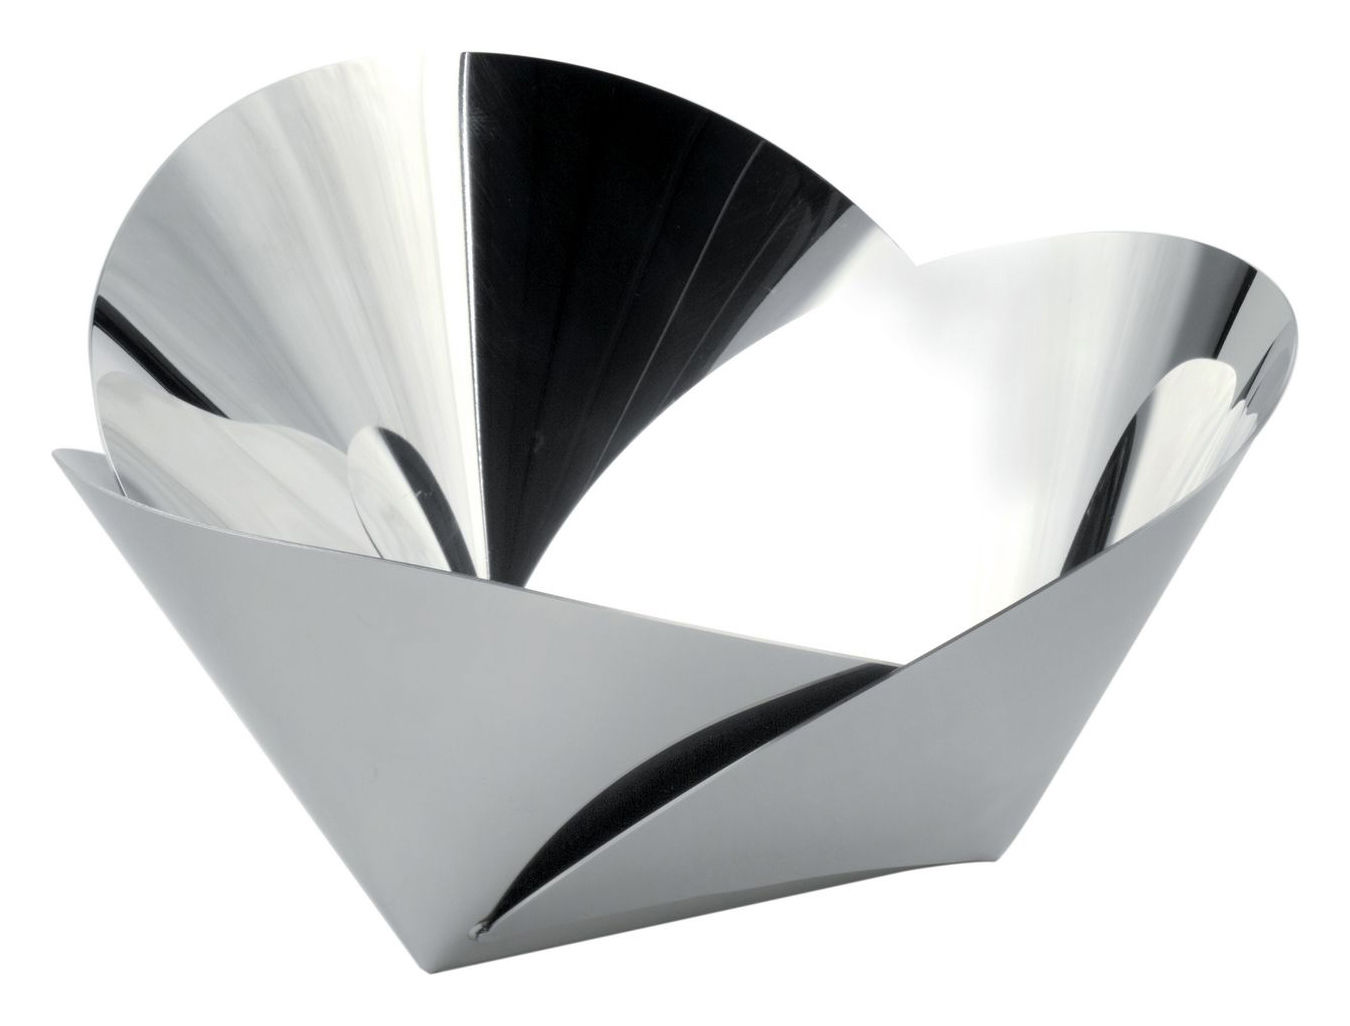 Arts de la table - Corbeilles, centres de table - Corbeille Harmonic / Ø 22 cm - Alessi - Acier poli - Acier inoxydable